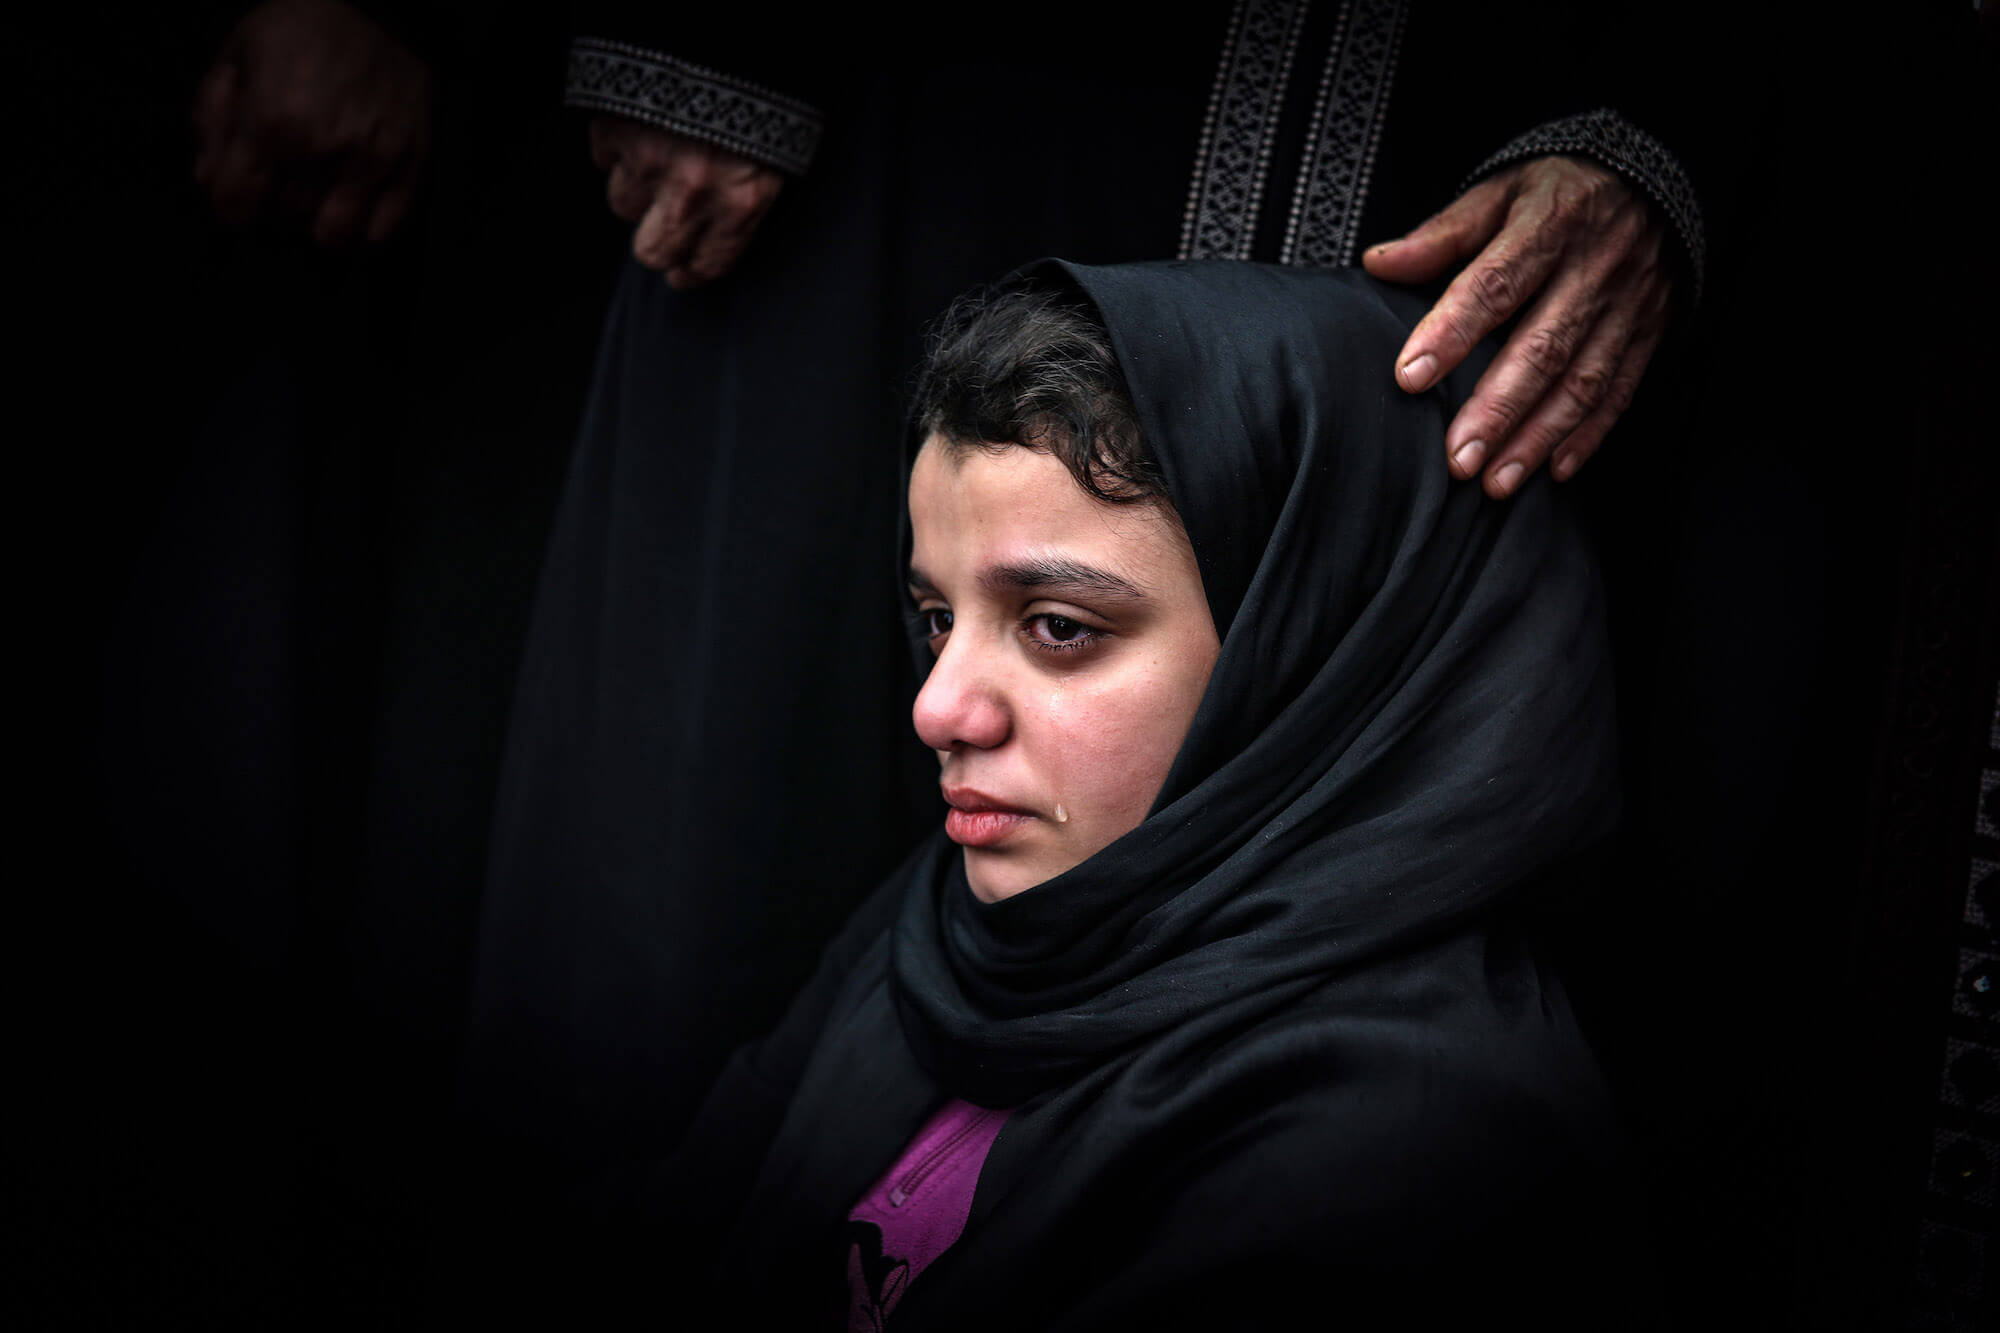 This photo taken on November 12 shows Fatma Abu al-Atta mourning during the funeral of her father, the top Islamic Jihad commander Bahaa Abu al-Atta who was killed by Israeli attack together with his wife Asma. (Photo: Mohammed Zaanoun / Activestills.org)